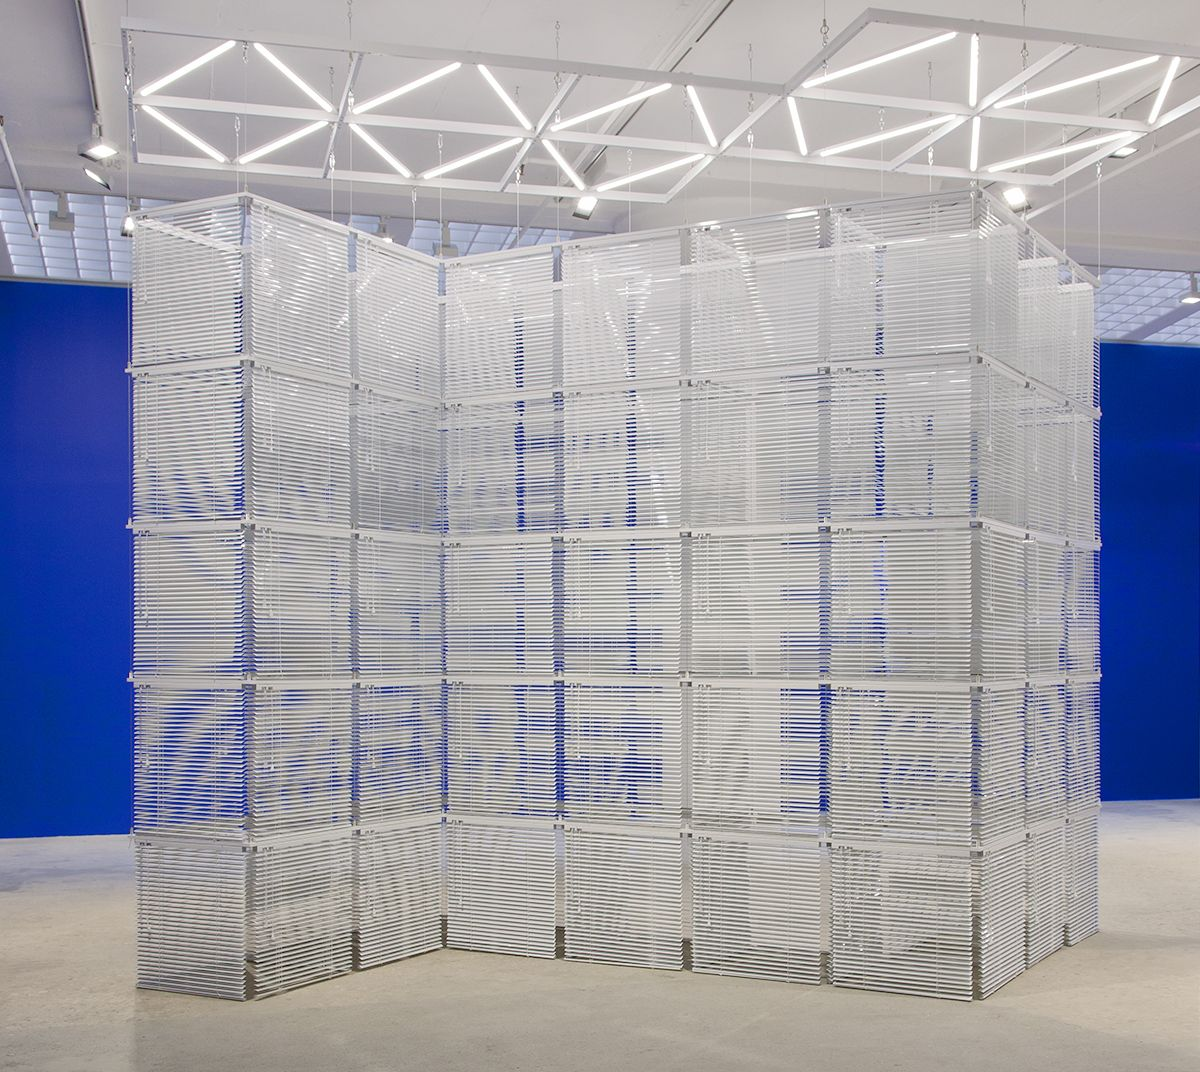 Haegue Yang, Sol LeWitt Upside Down –Cube Structure Based on Five Modules, Expanded 184 Times#73-A, 2016